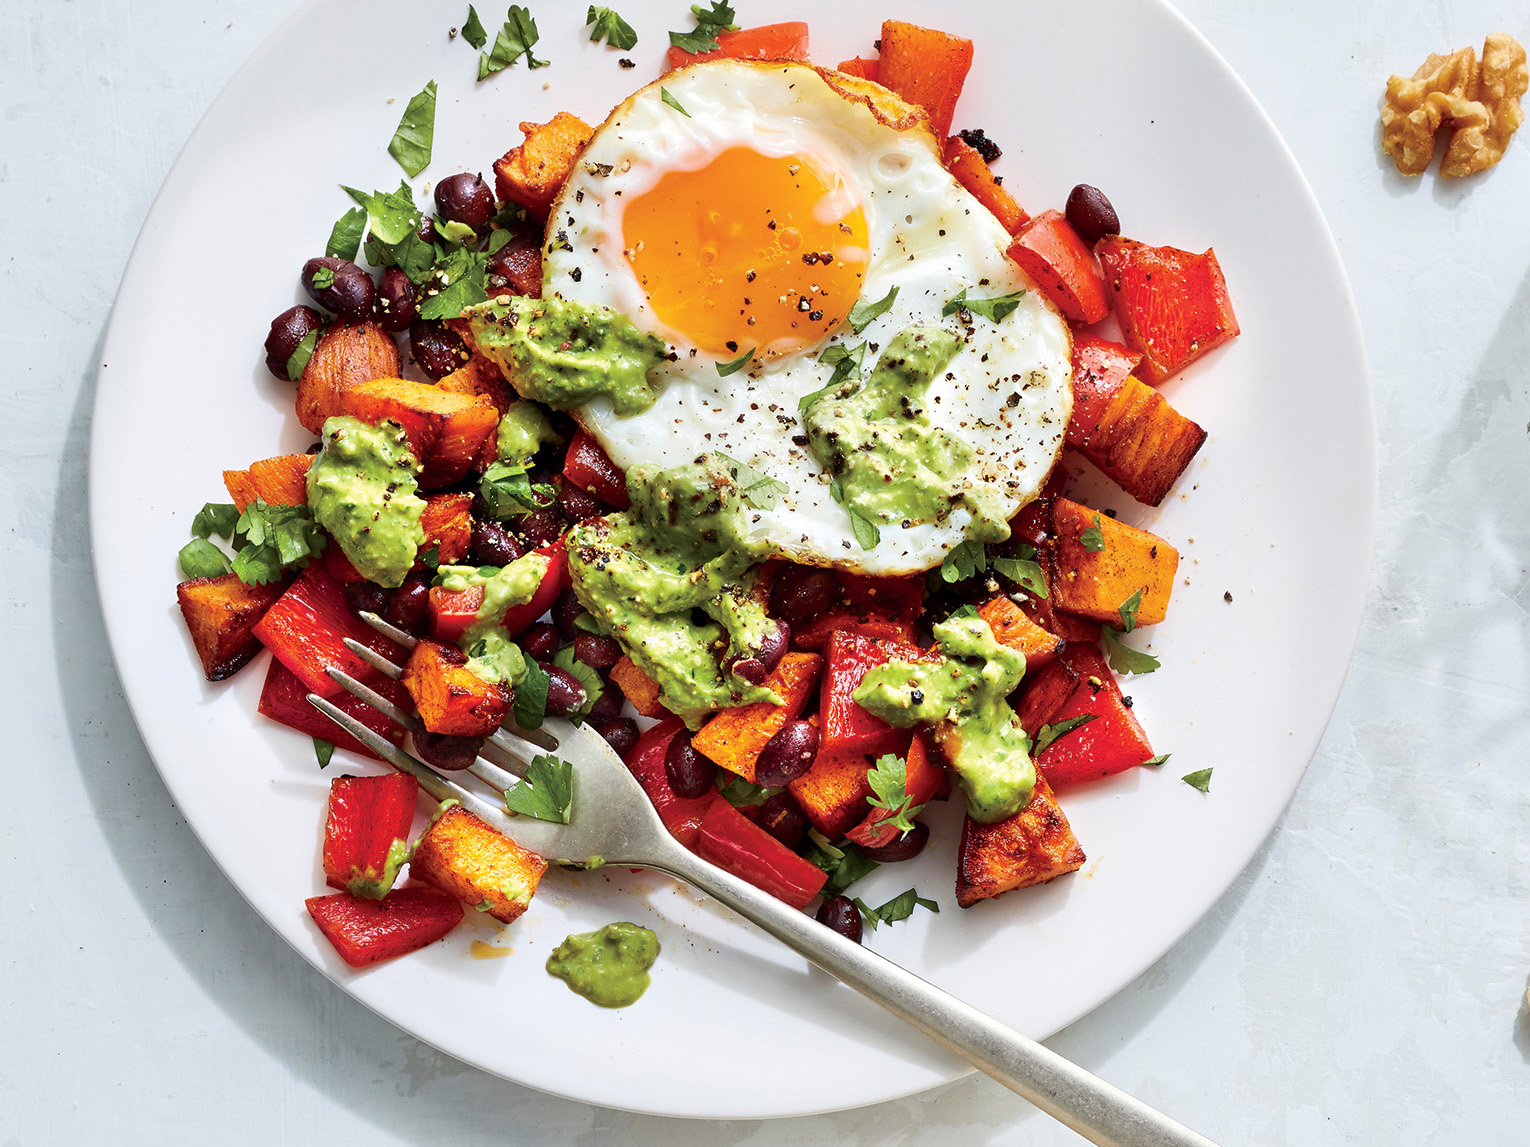 ck-Southwestern Sweet Potato and Egg Hash